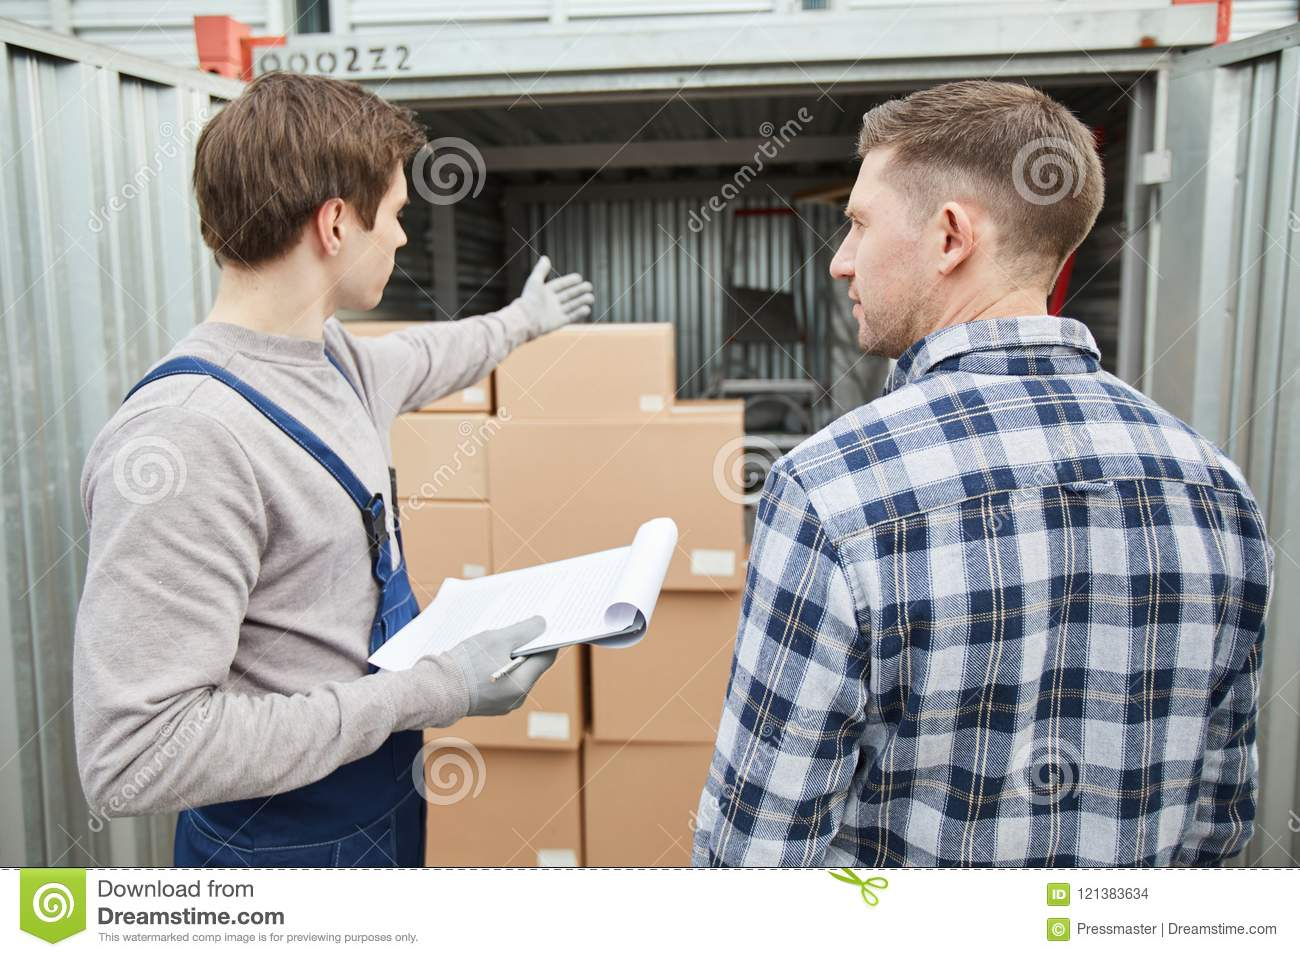 Worker showing container to client